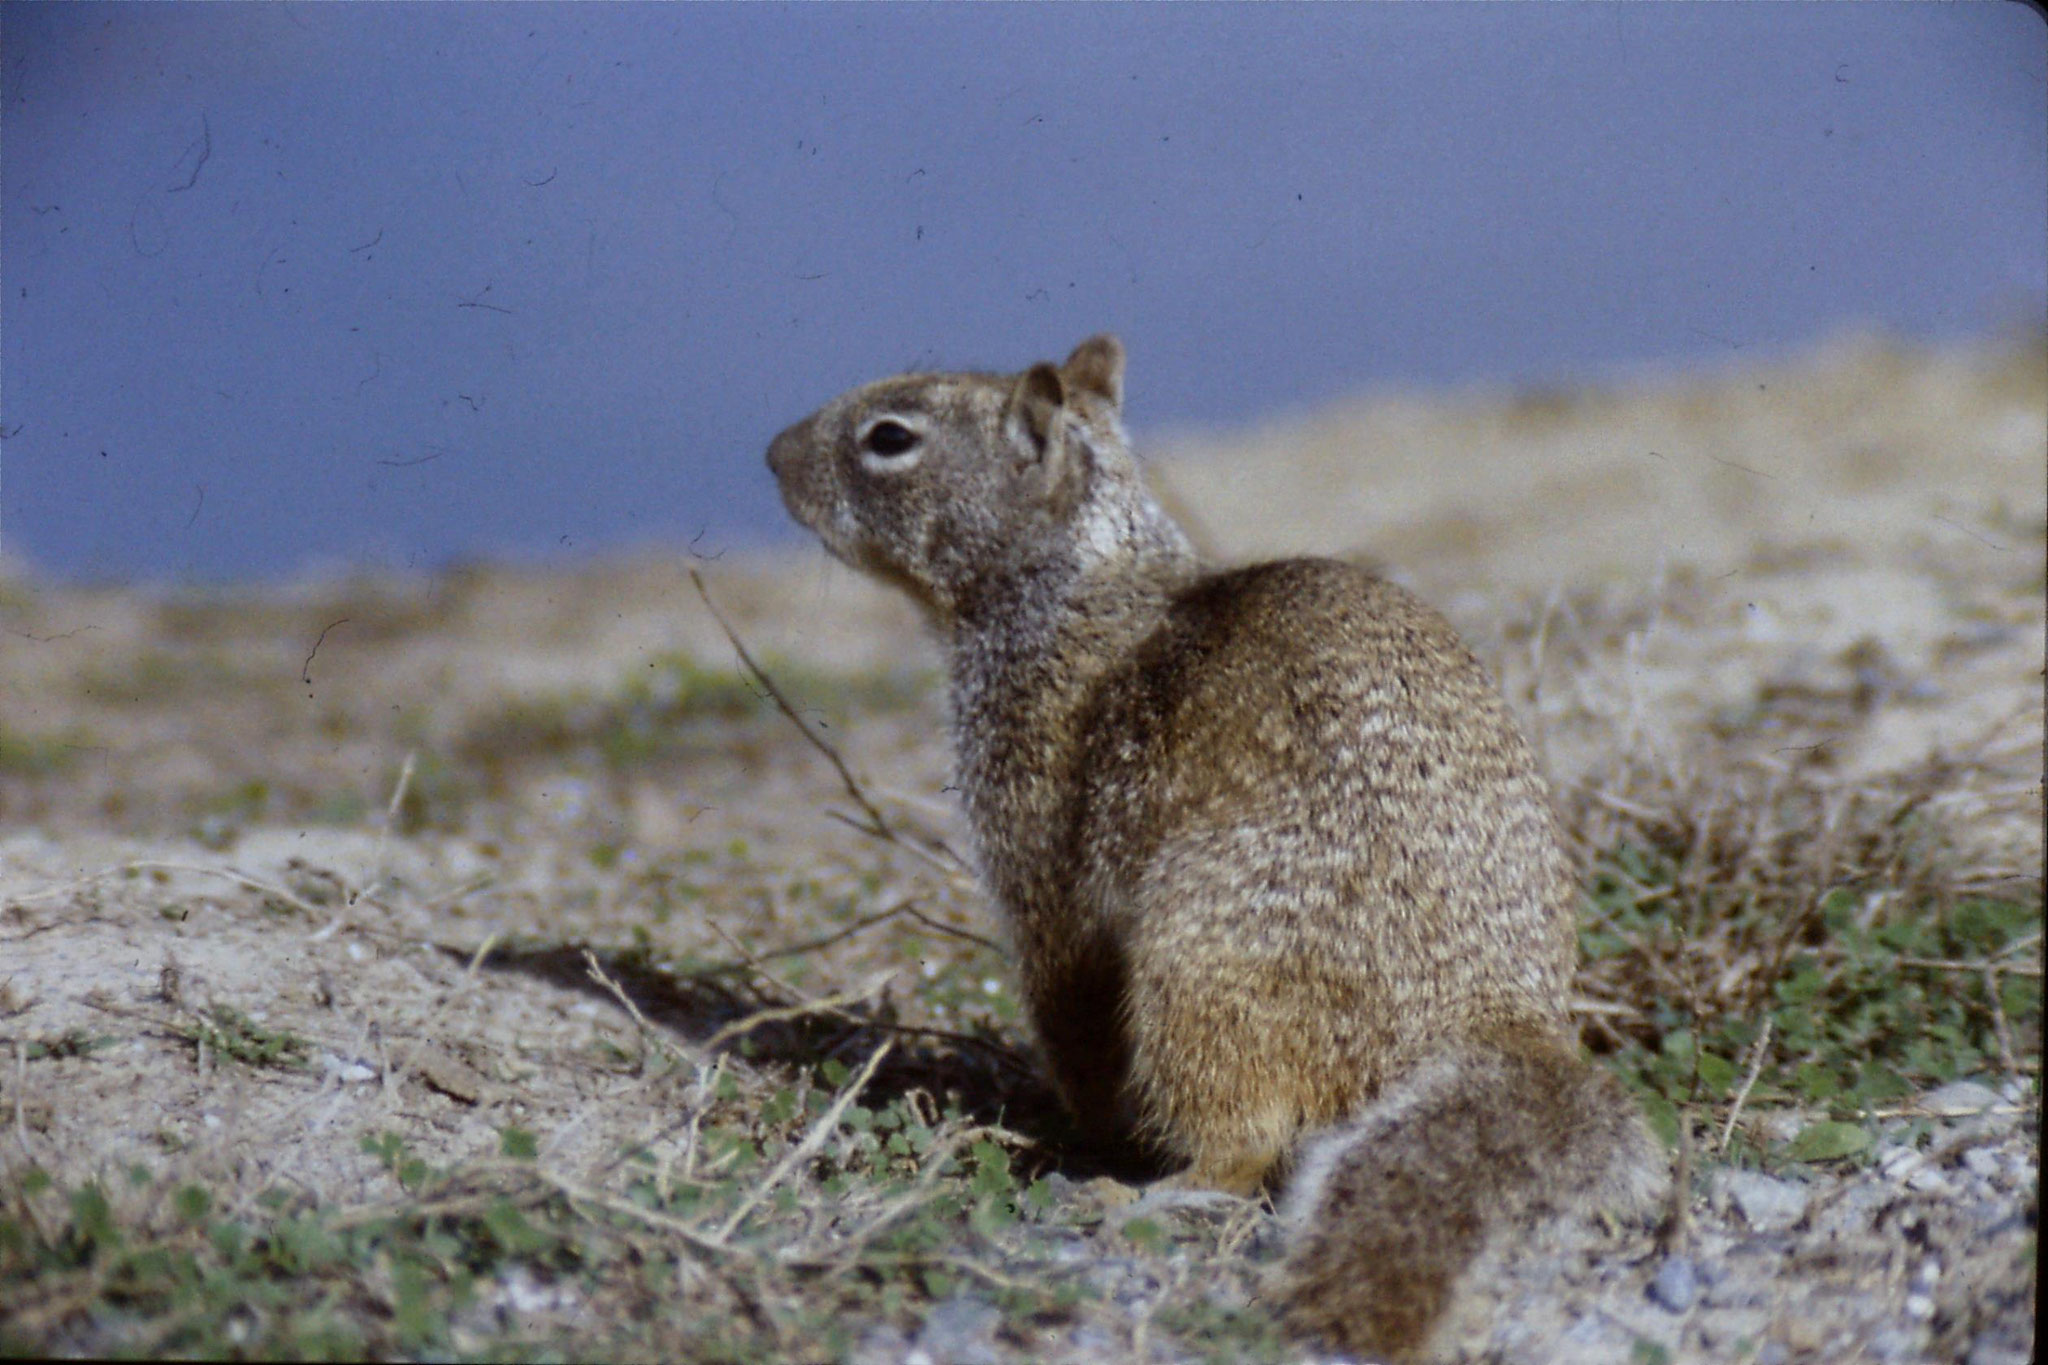 15/2/1991: 9: Sacramento NWR, Beechy Ground Squirrel